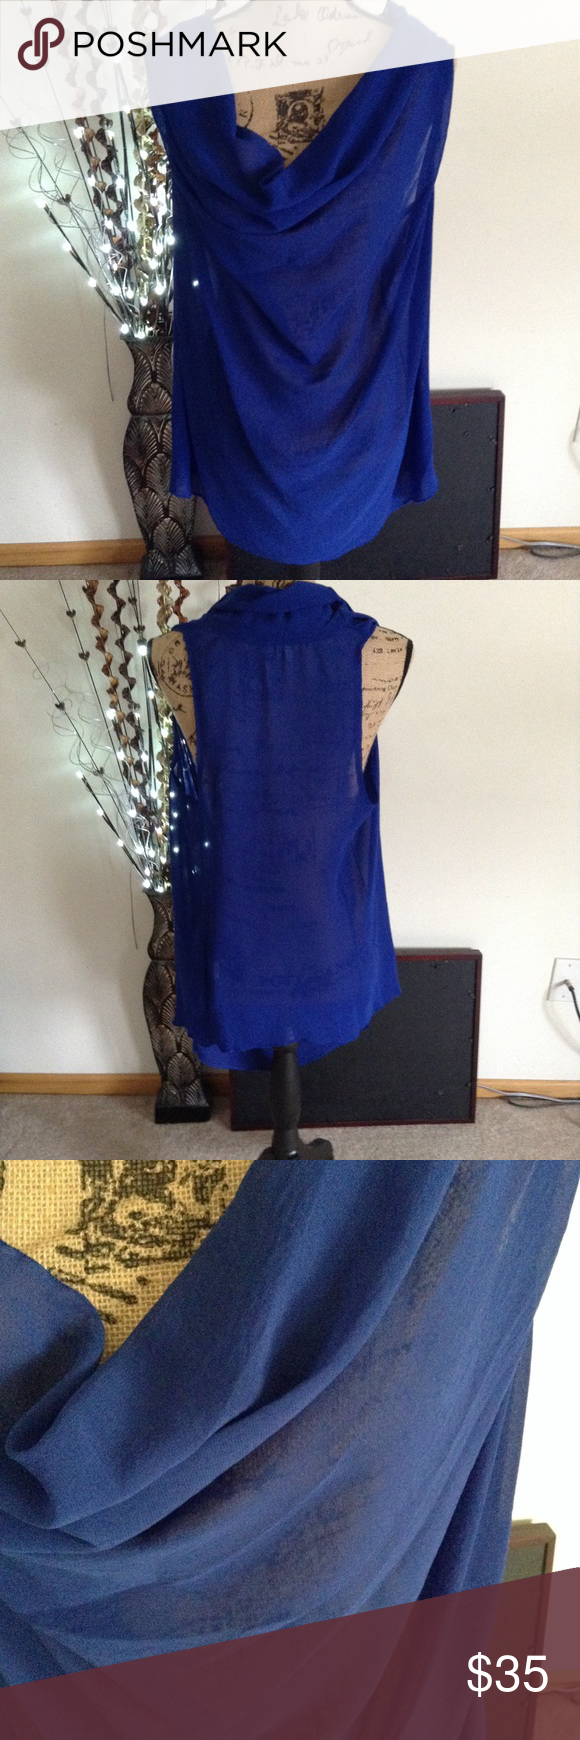 Show Me Your Mumu Shawl Neck Top Cobalt Blue Sleeveless With A D Semi Sheer 2xl Poly Blend Tops Blouses